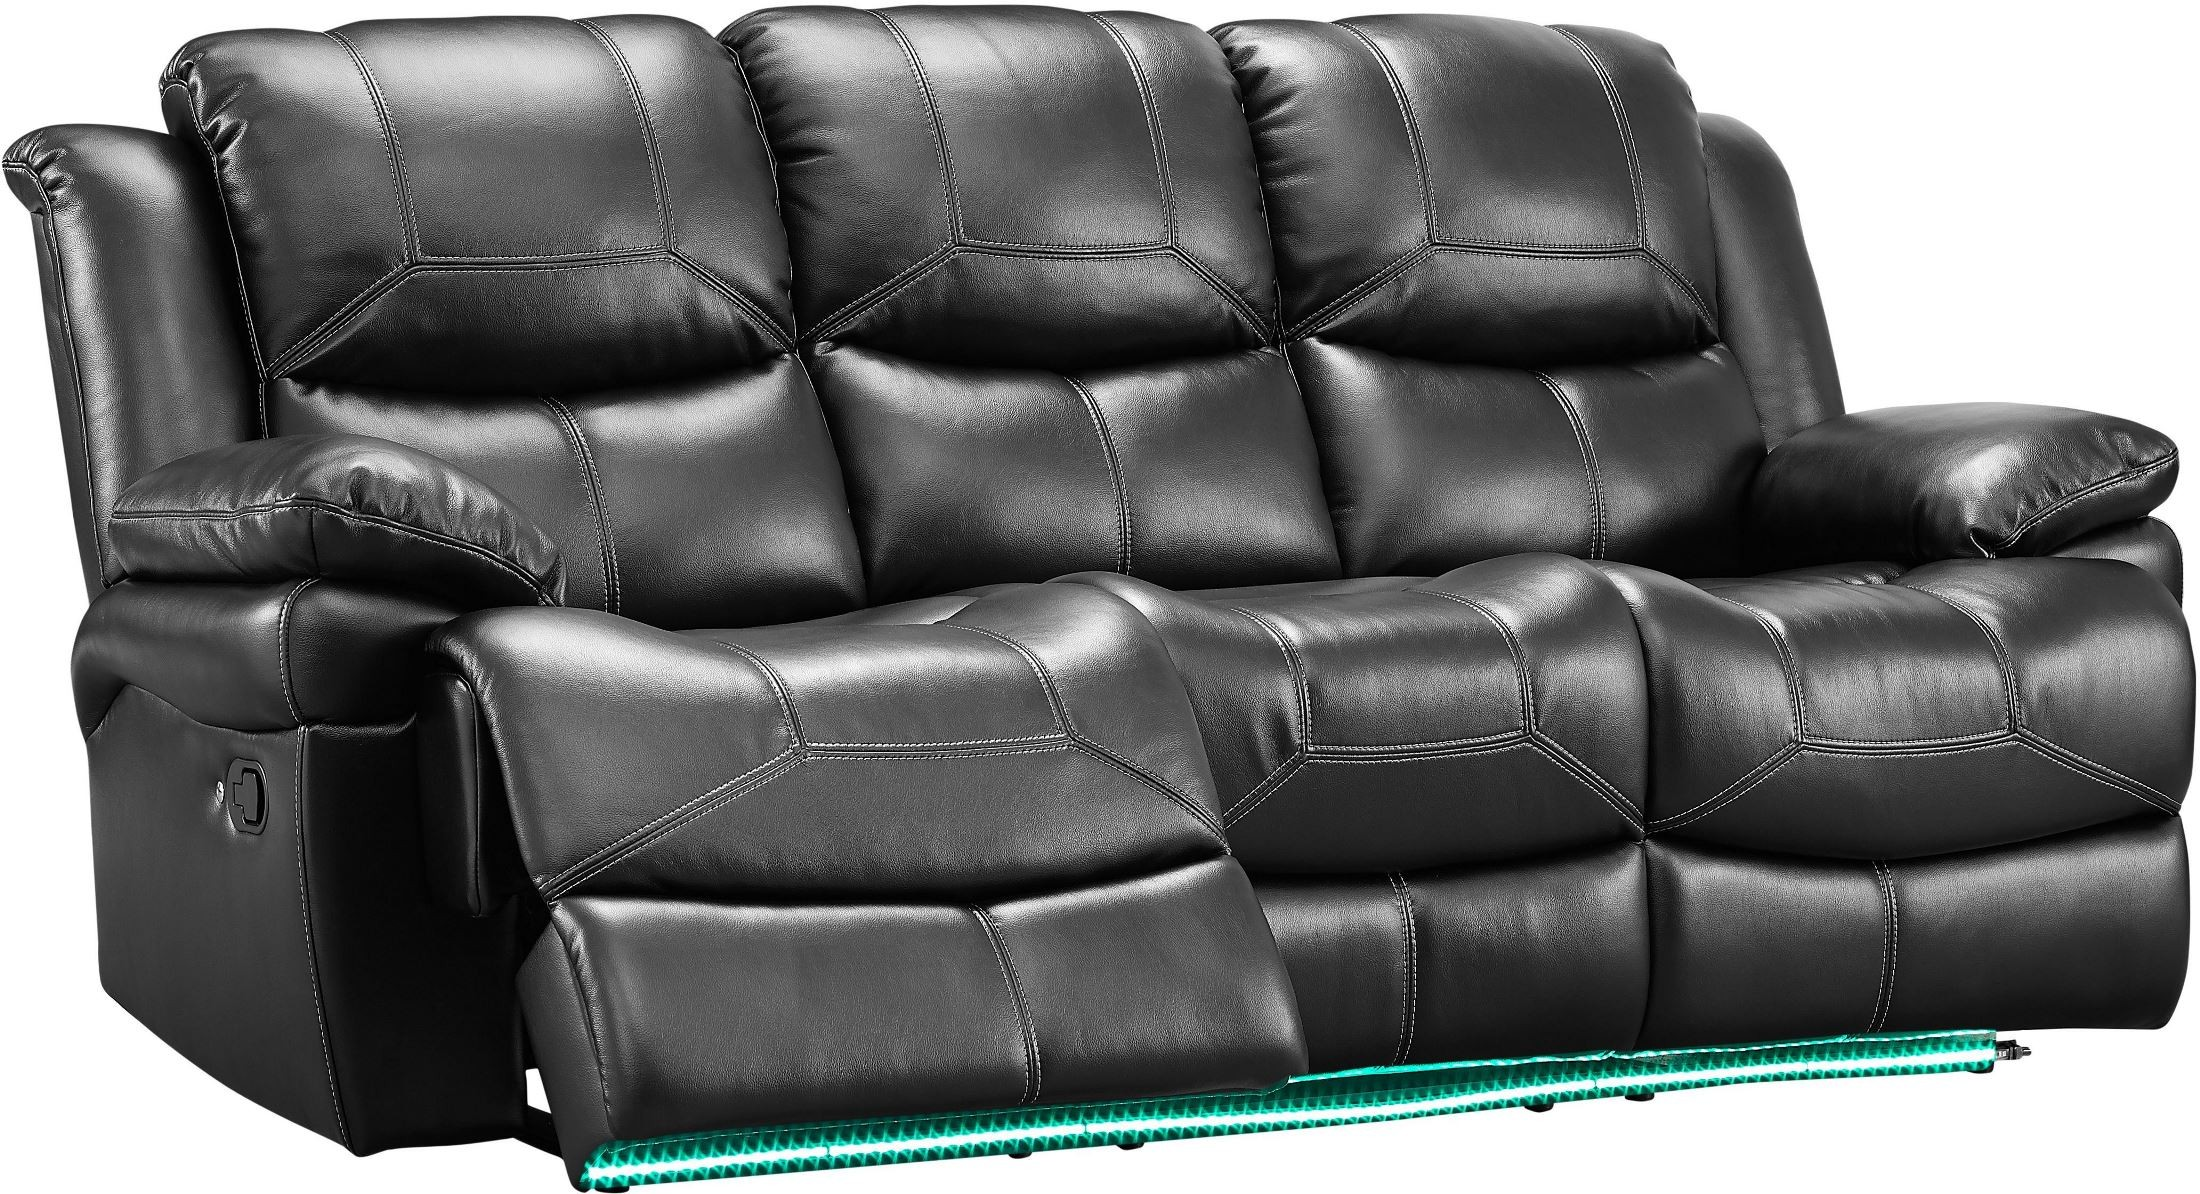 Cool Flynn Premier Black Power Reclining Living Room Set Machost Co Dining Chair Design Ideas Machostcouk